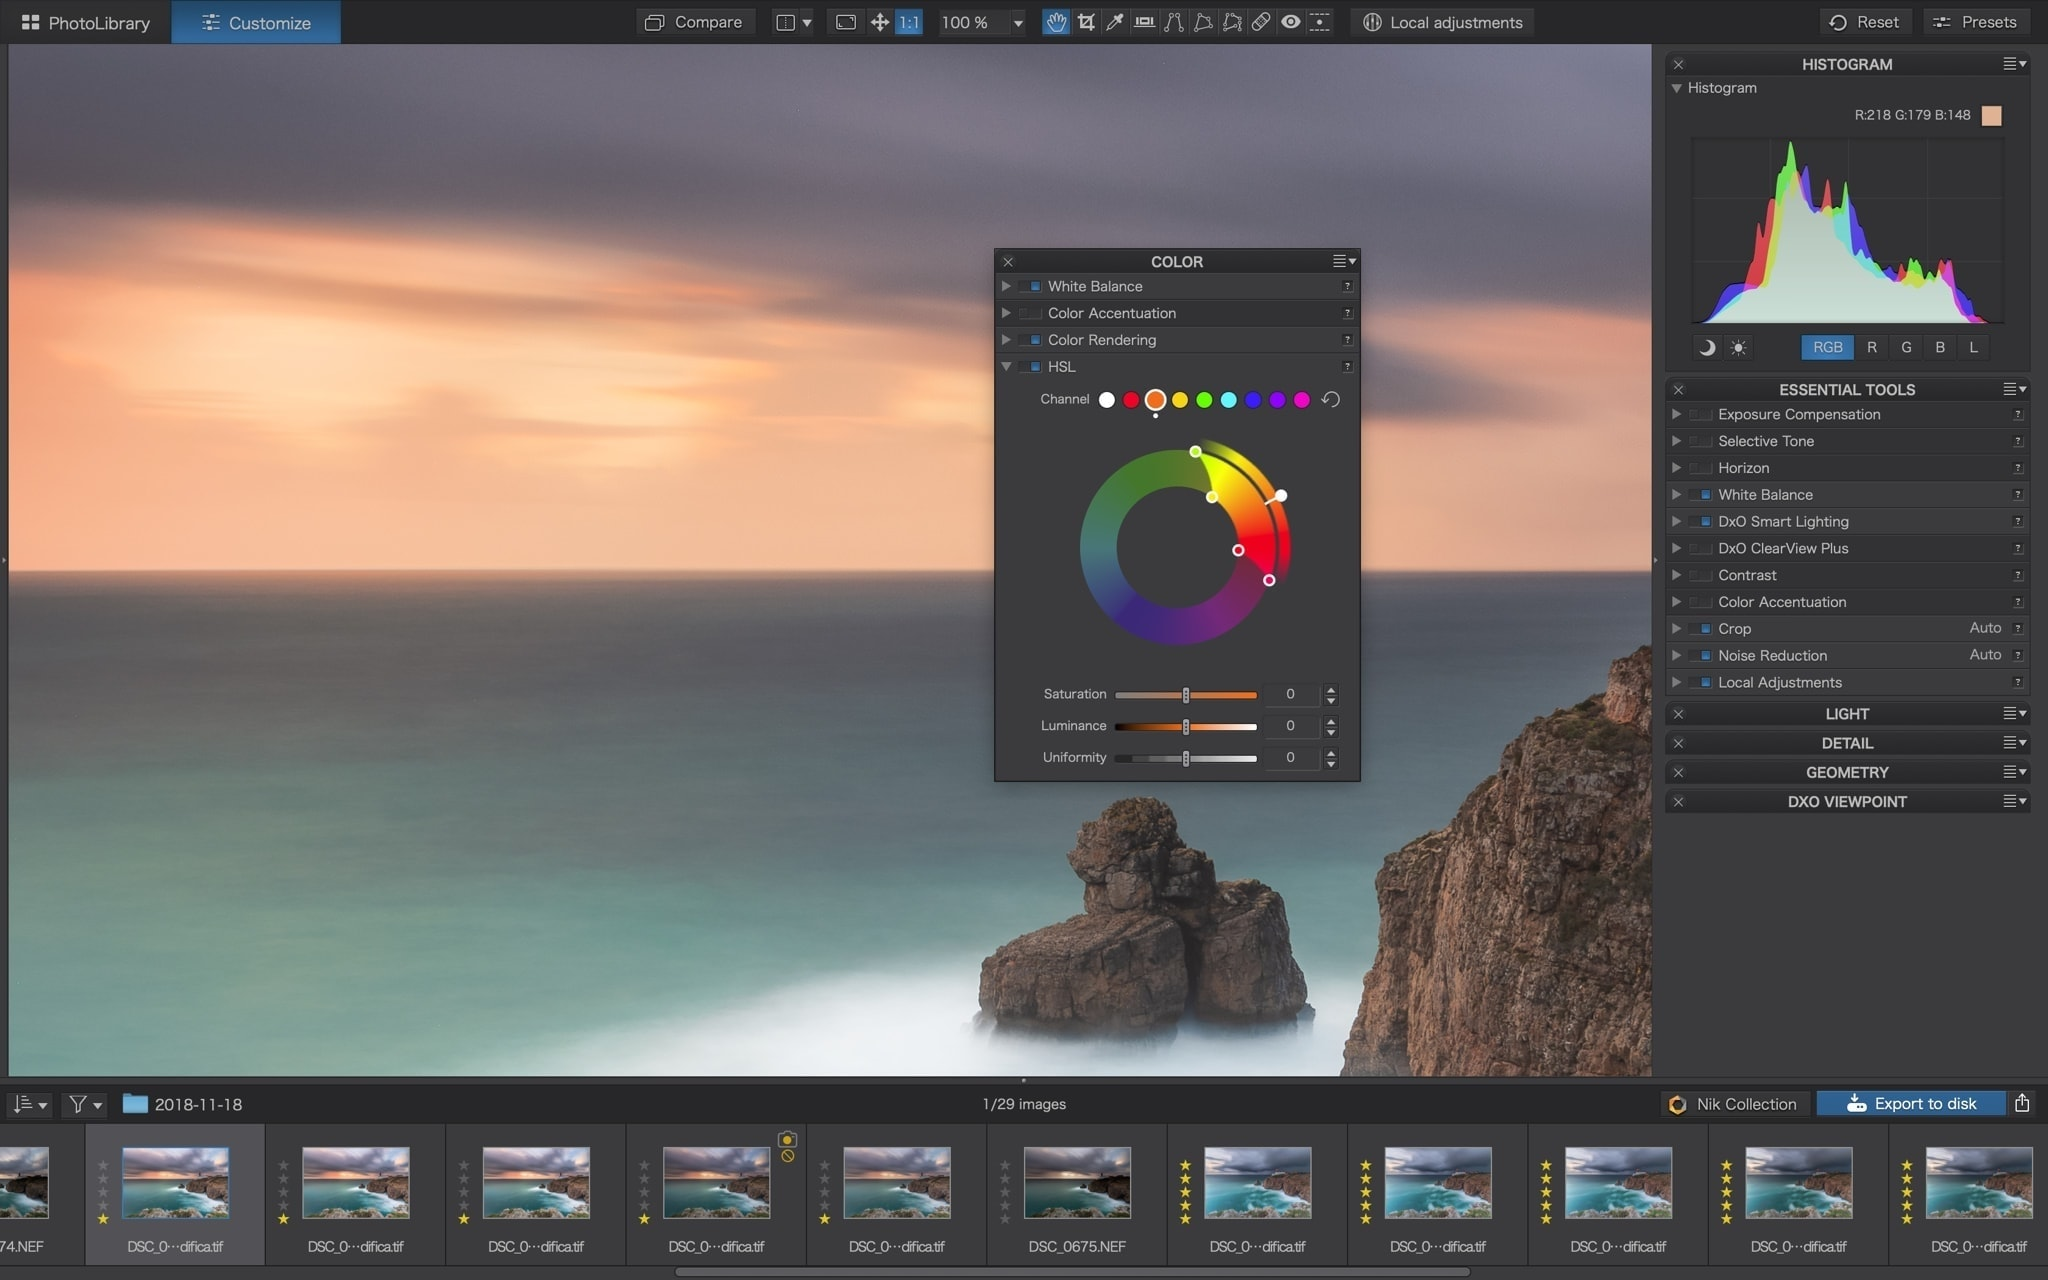 PhotoLab 3 DxO Color Wheel Francesco Gola review